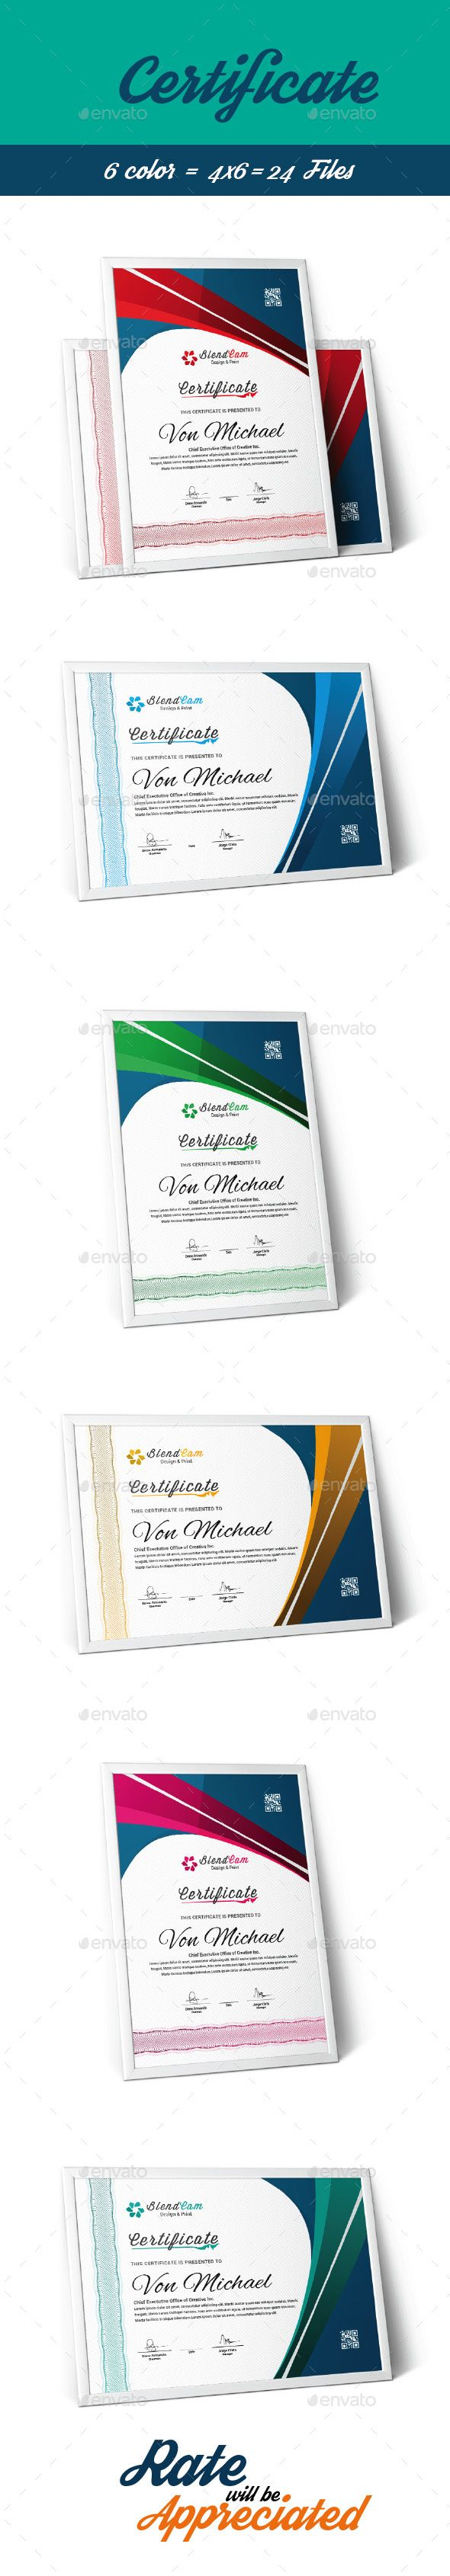 297 best certificate templates images on pinterest fonts and banners certificate design template certificates stationery design template vector eps ai illustrator download here xflitez Image collections